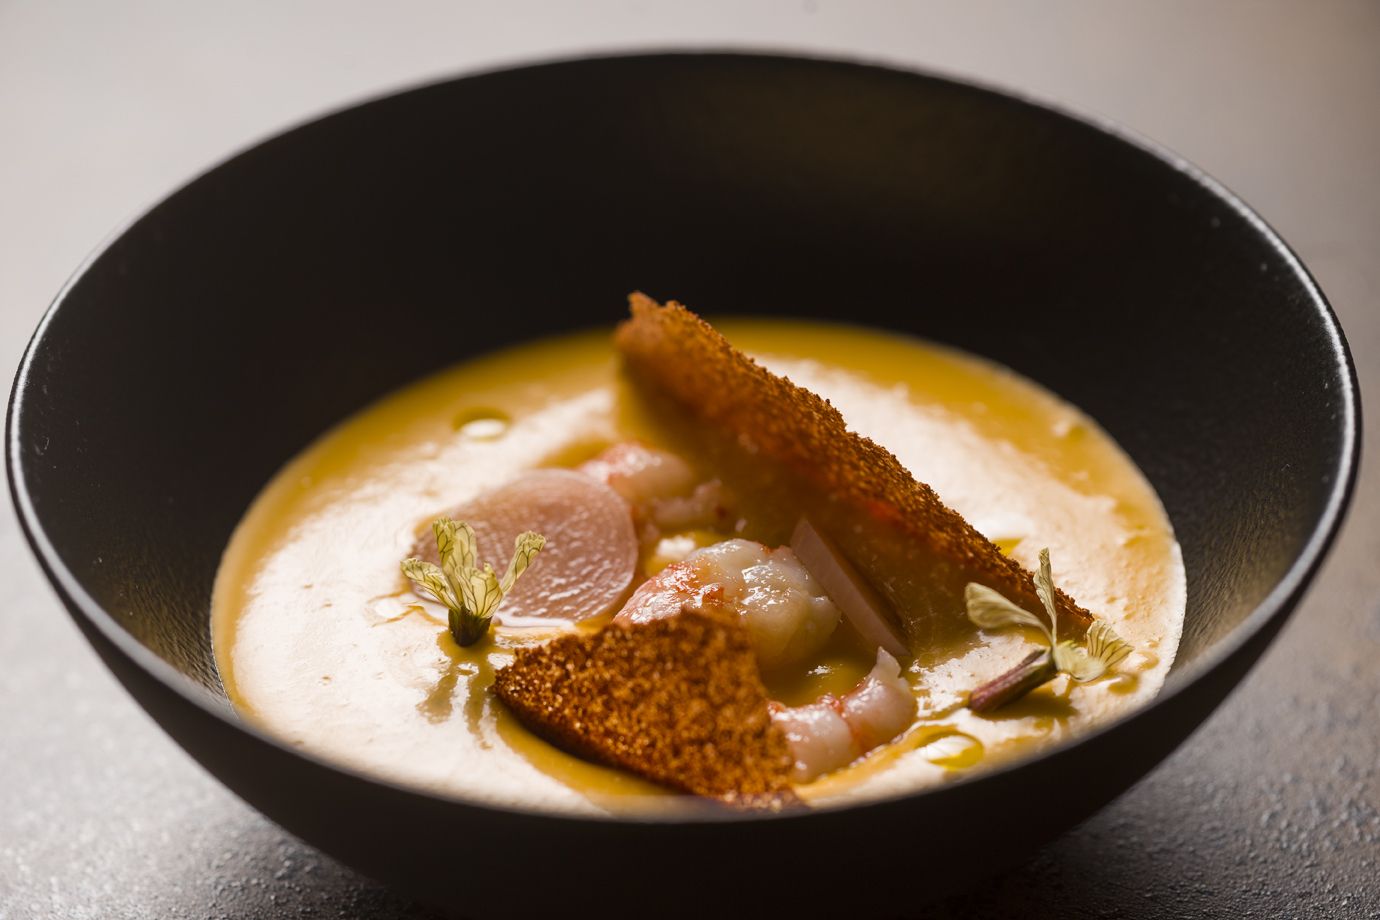 Cuisine D Angle Avec Bar 22 michelin star restaurants in barcelona – autumn 2019